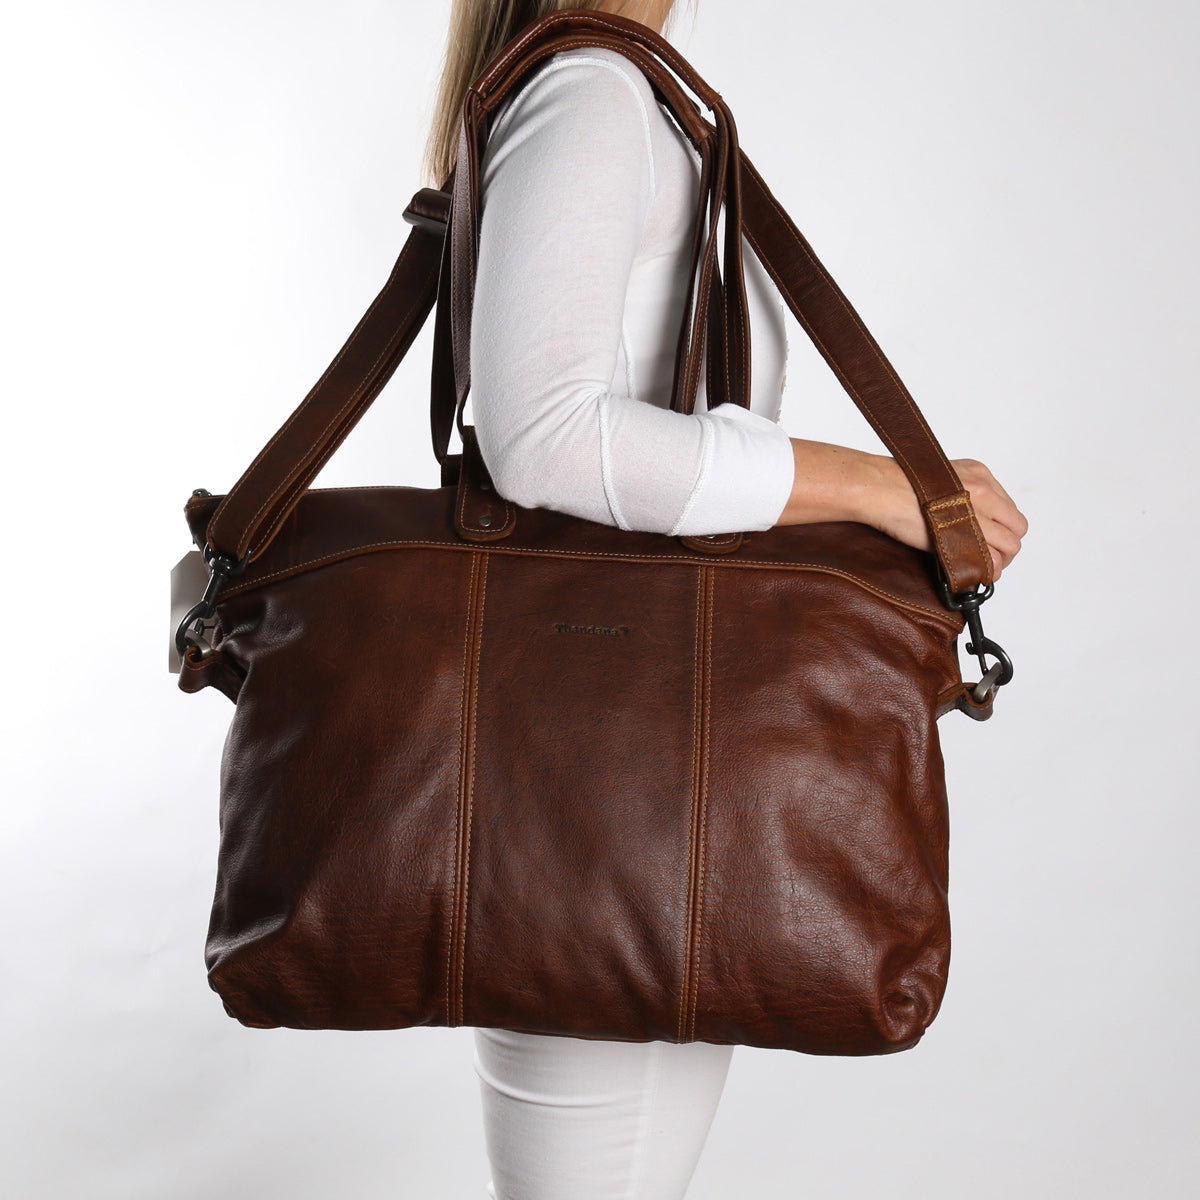 Thandana Ladies Cabin Bag - Hazelnut - Zufrique Boutique